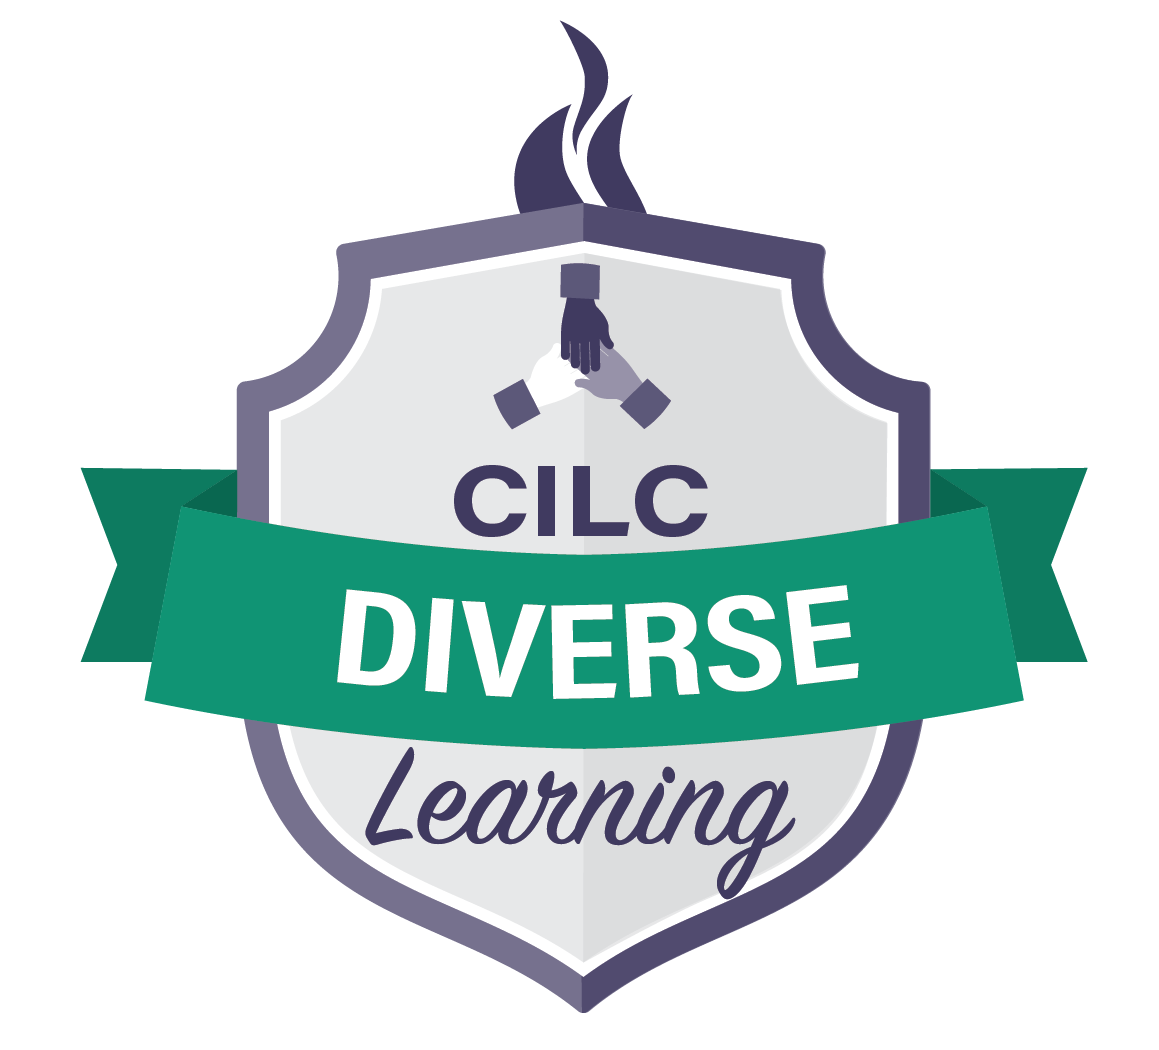 CILC Diverse Learning Value Seal